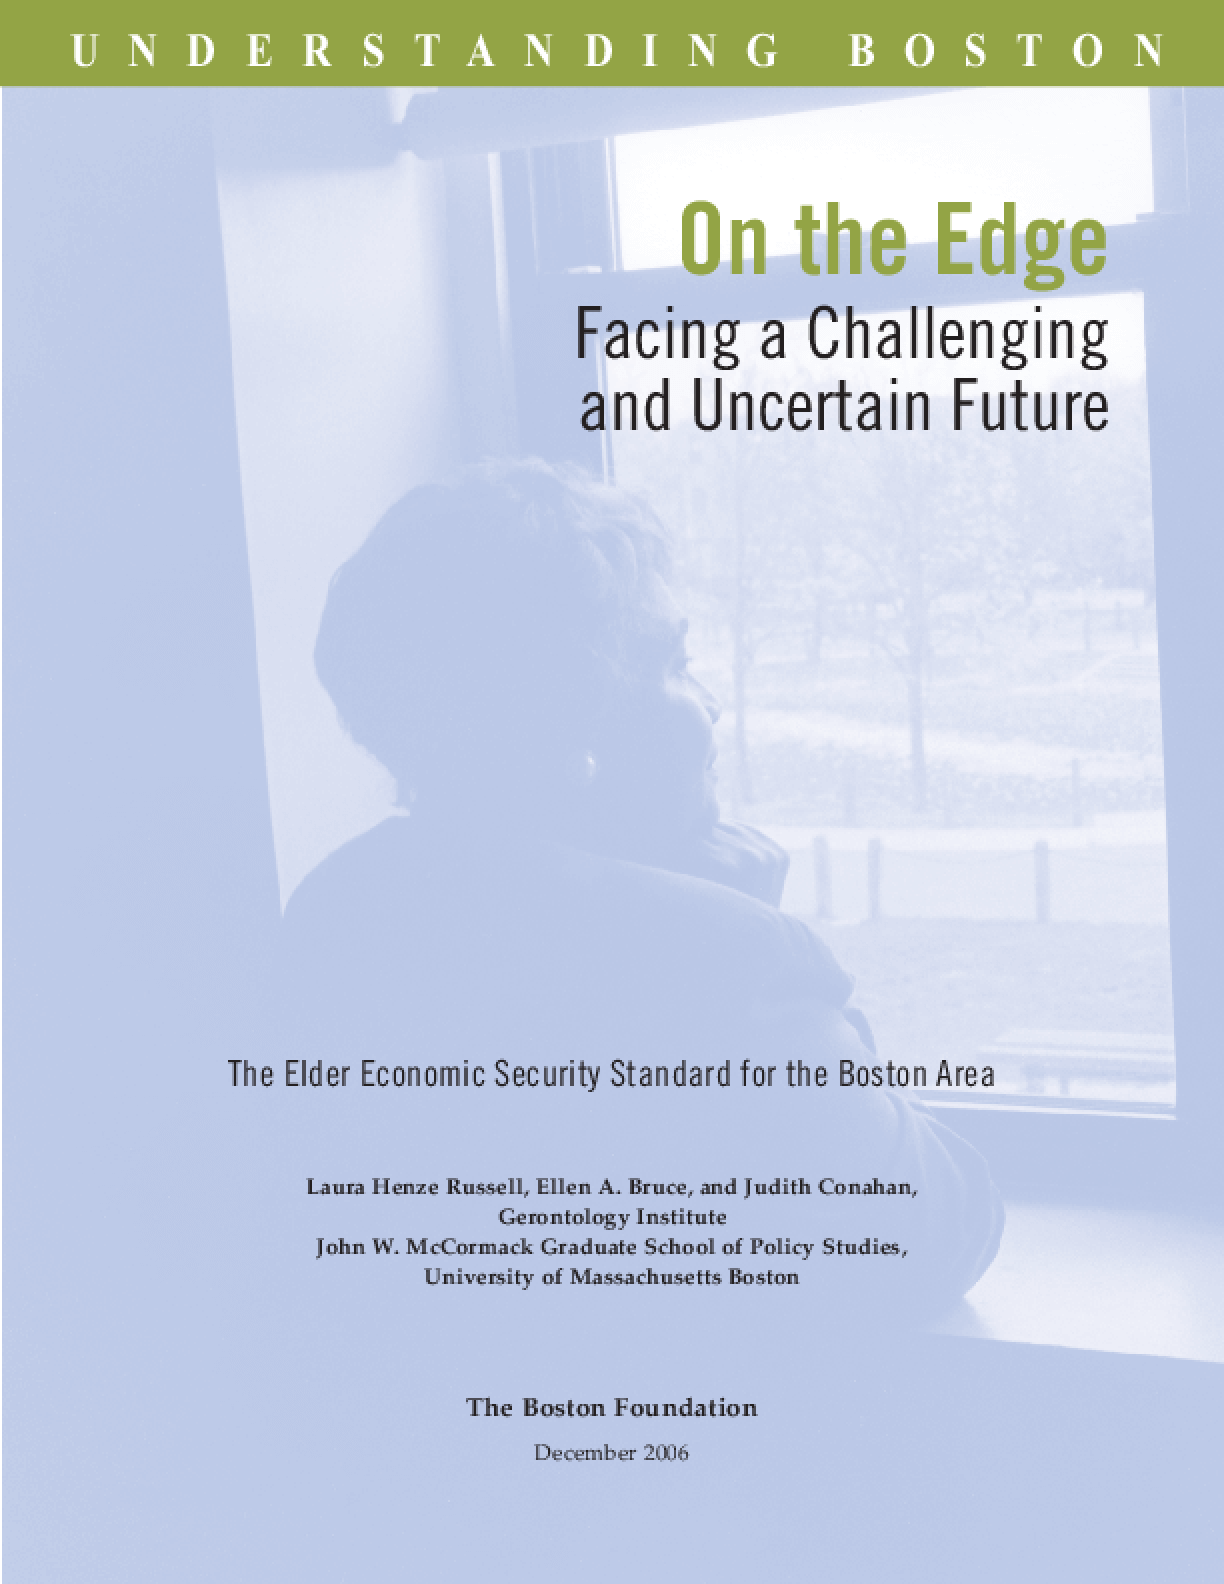 On the Edge: Facing a Challenging and Uncertain Future